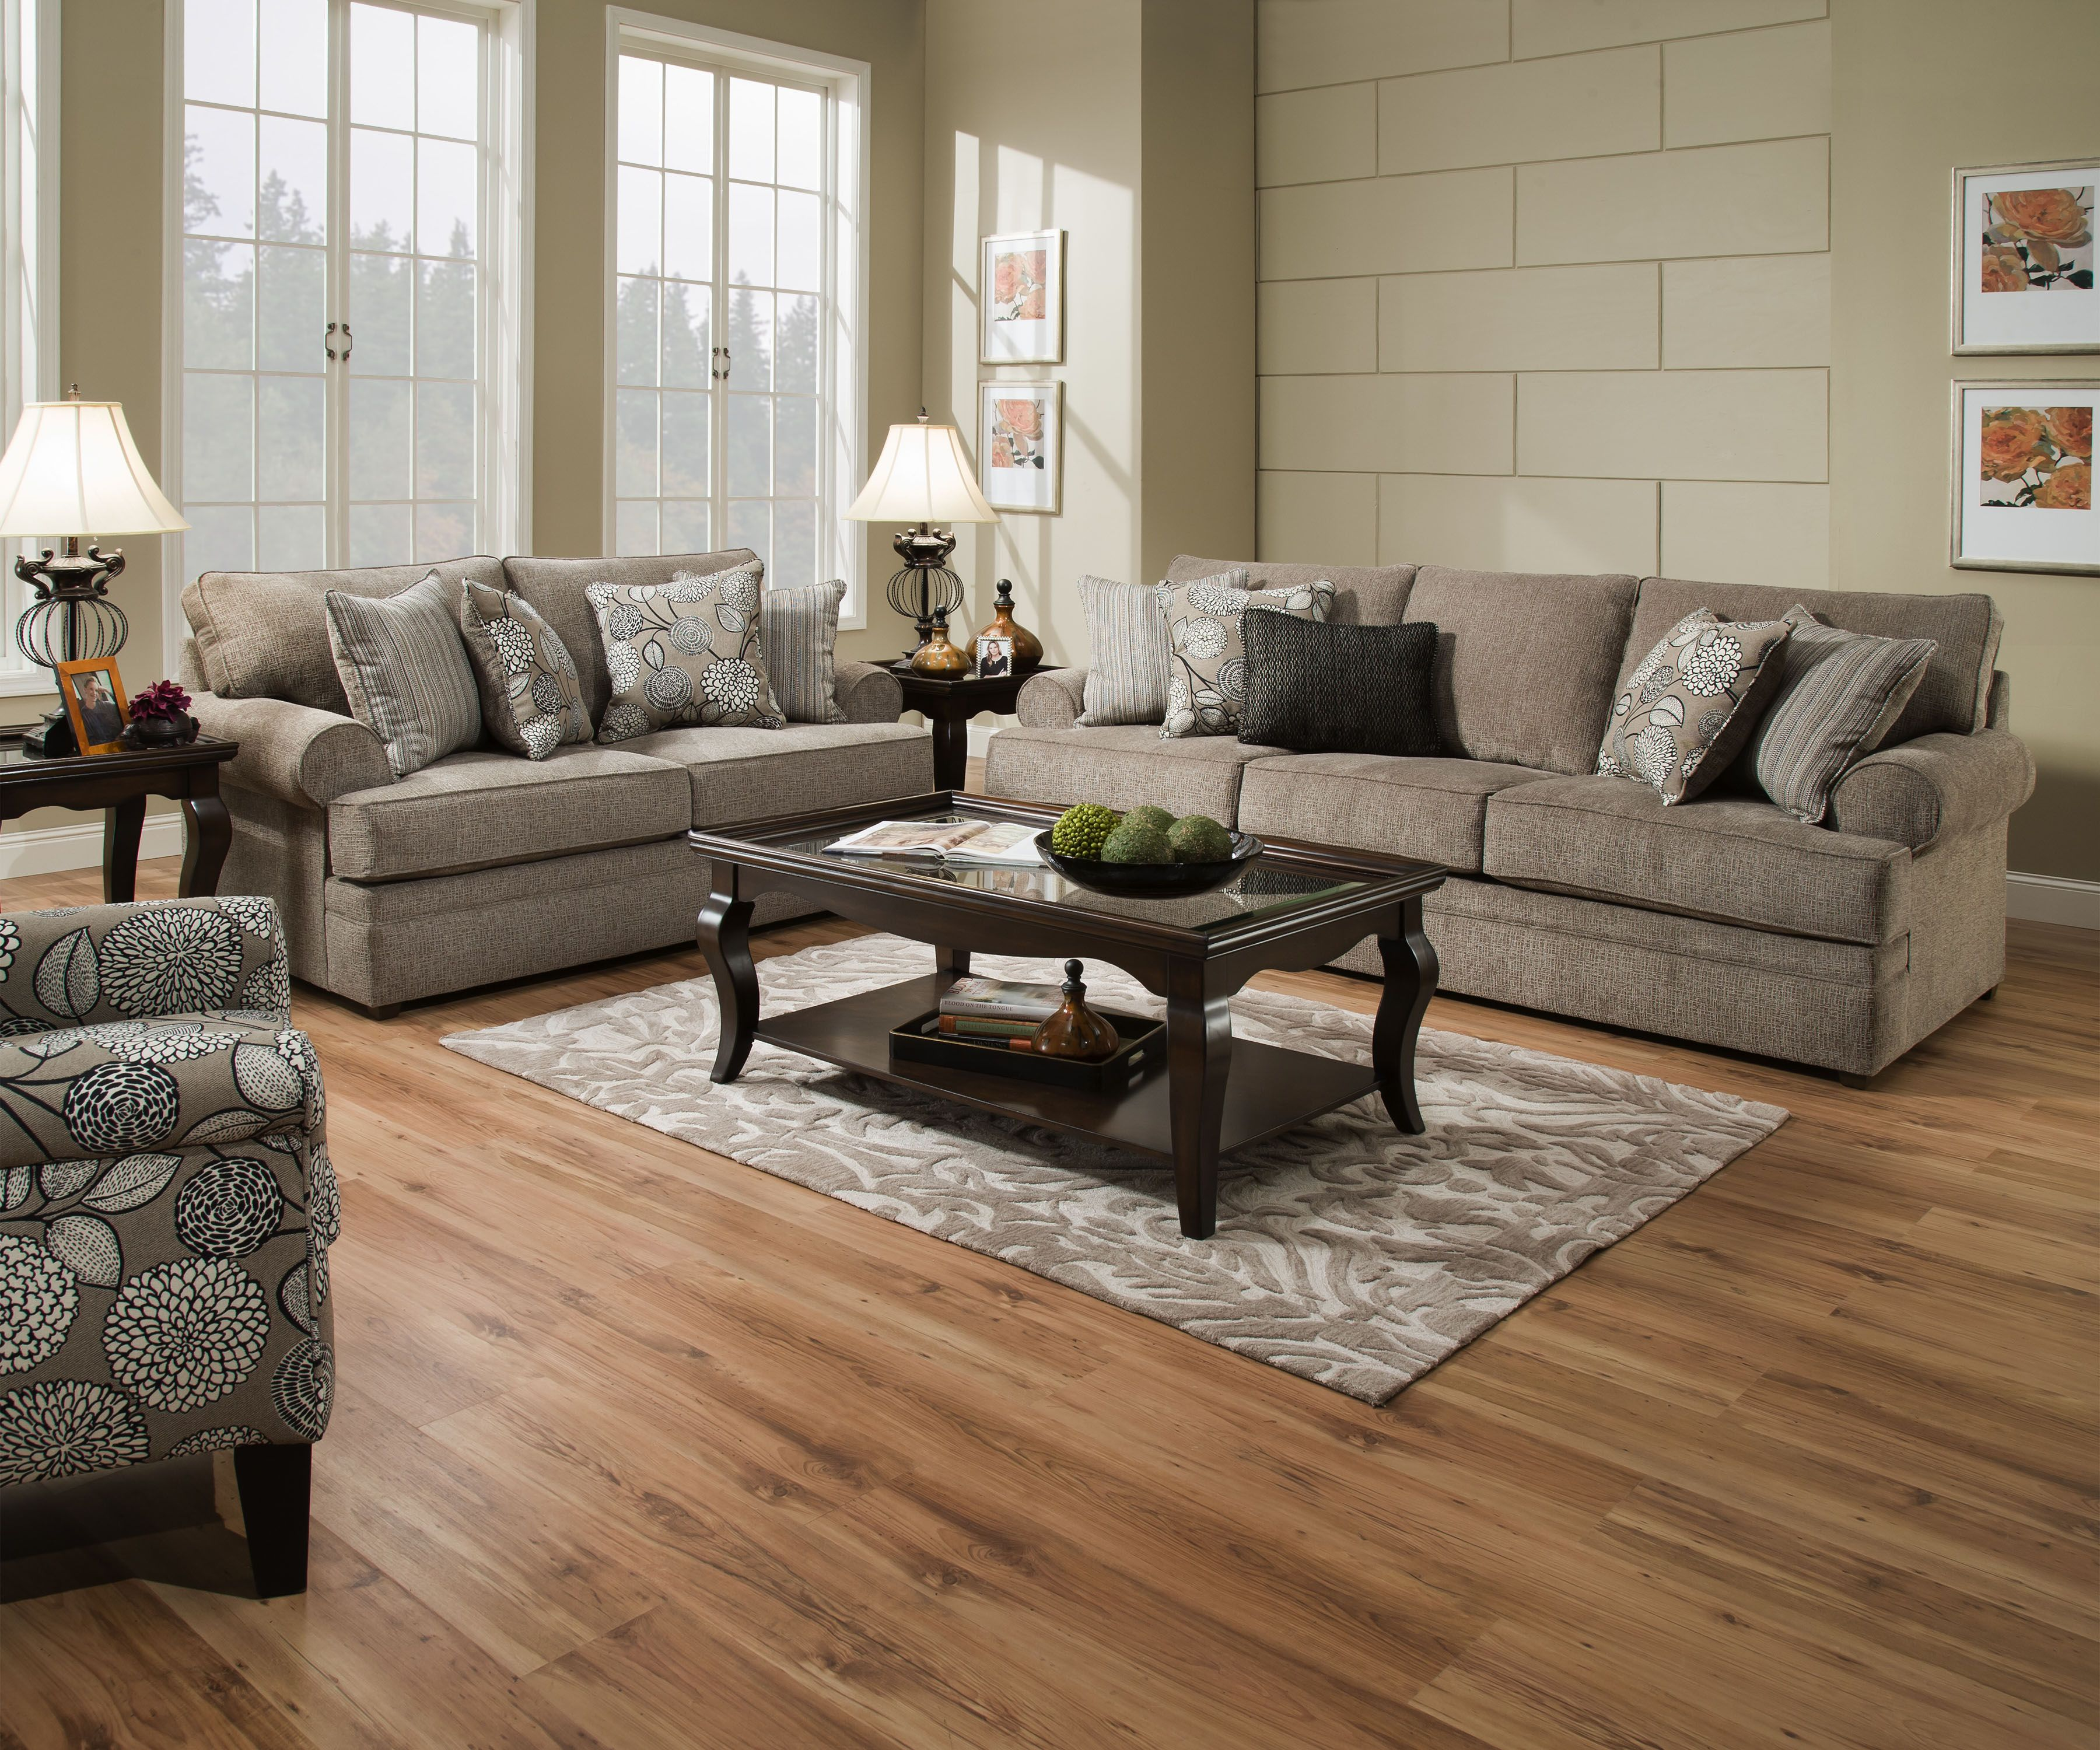 Macey Pewter Sofa And Love Seat Beautyrest By Simmons With Pocket Coil  Cushions Includes Toss Pillows